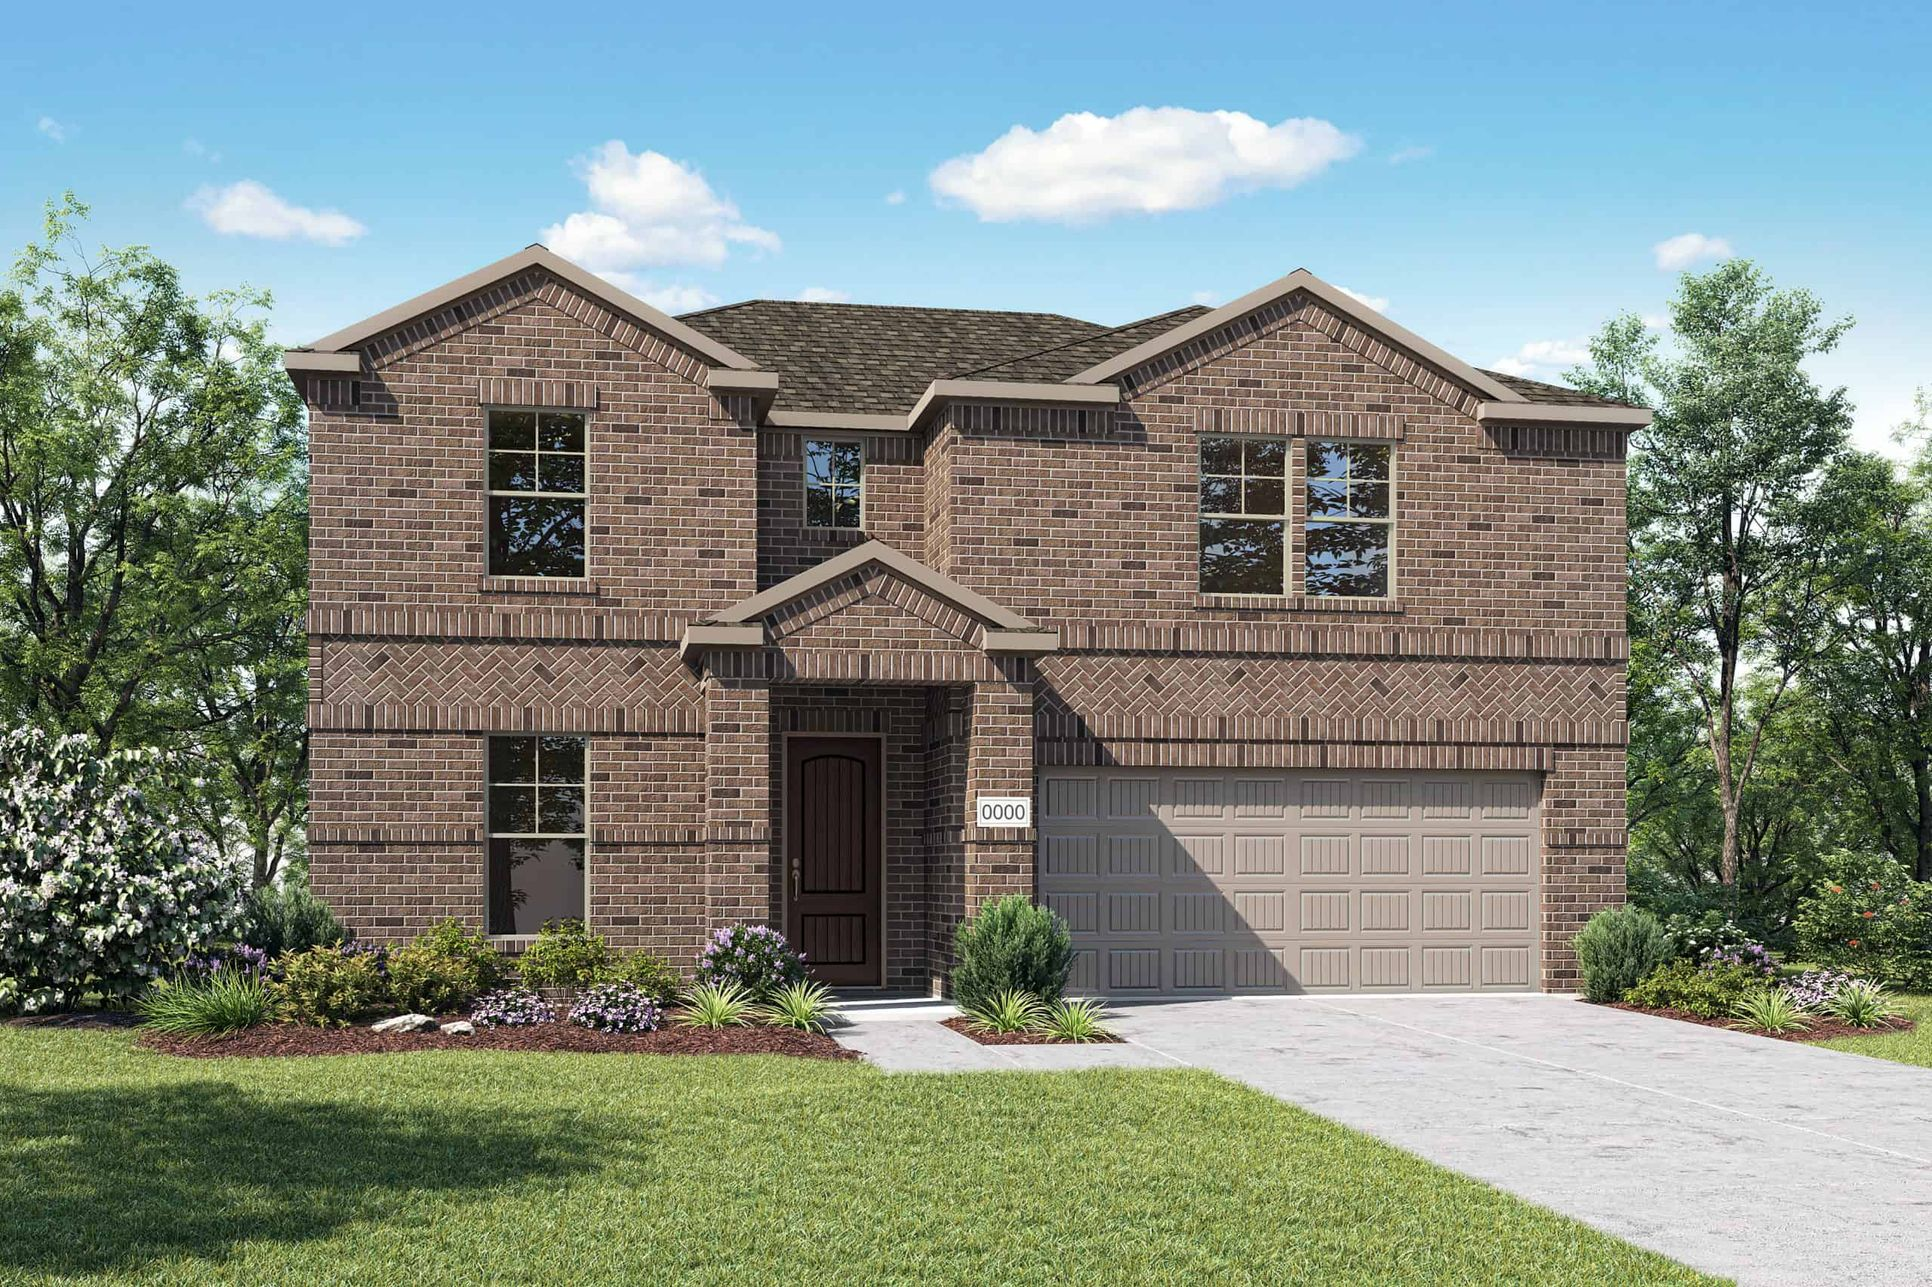 Elevation A:Elvation A is a two story traditional full brick home design with a herringbone brick detail. Many d